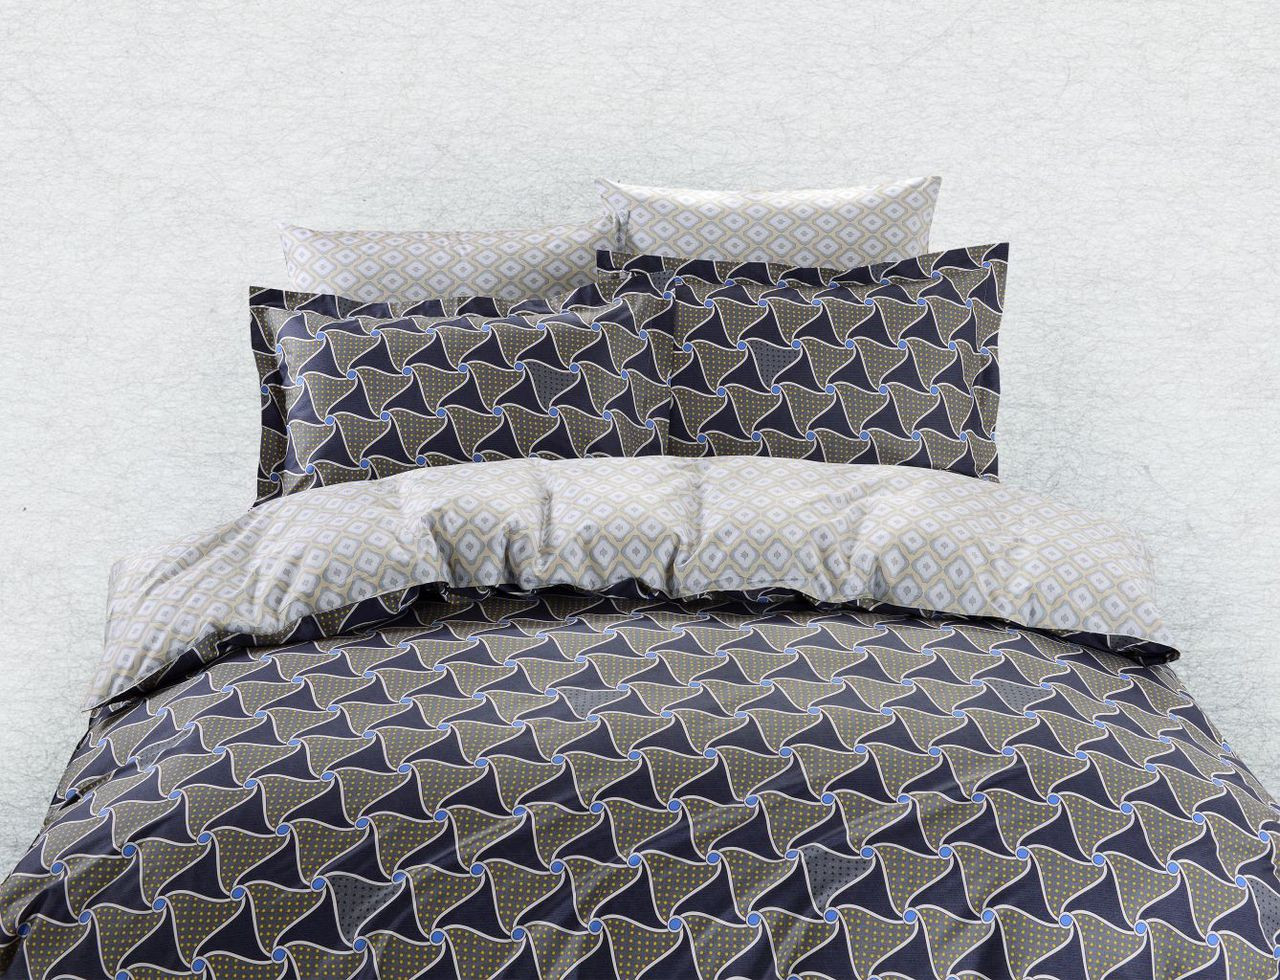 DM630Q  Epidavros Luxury Bedding Set